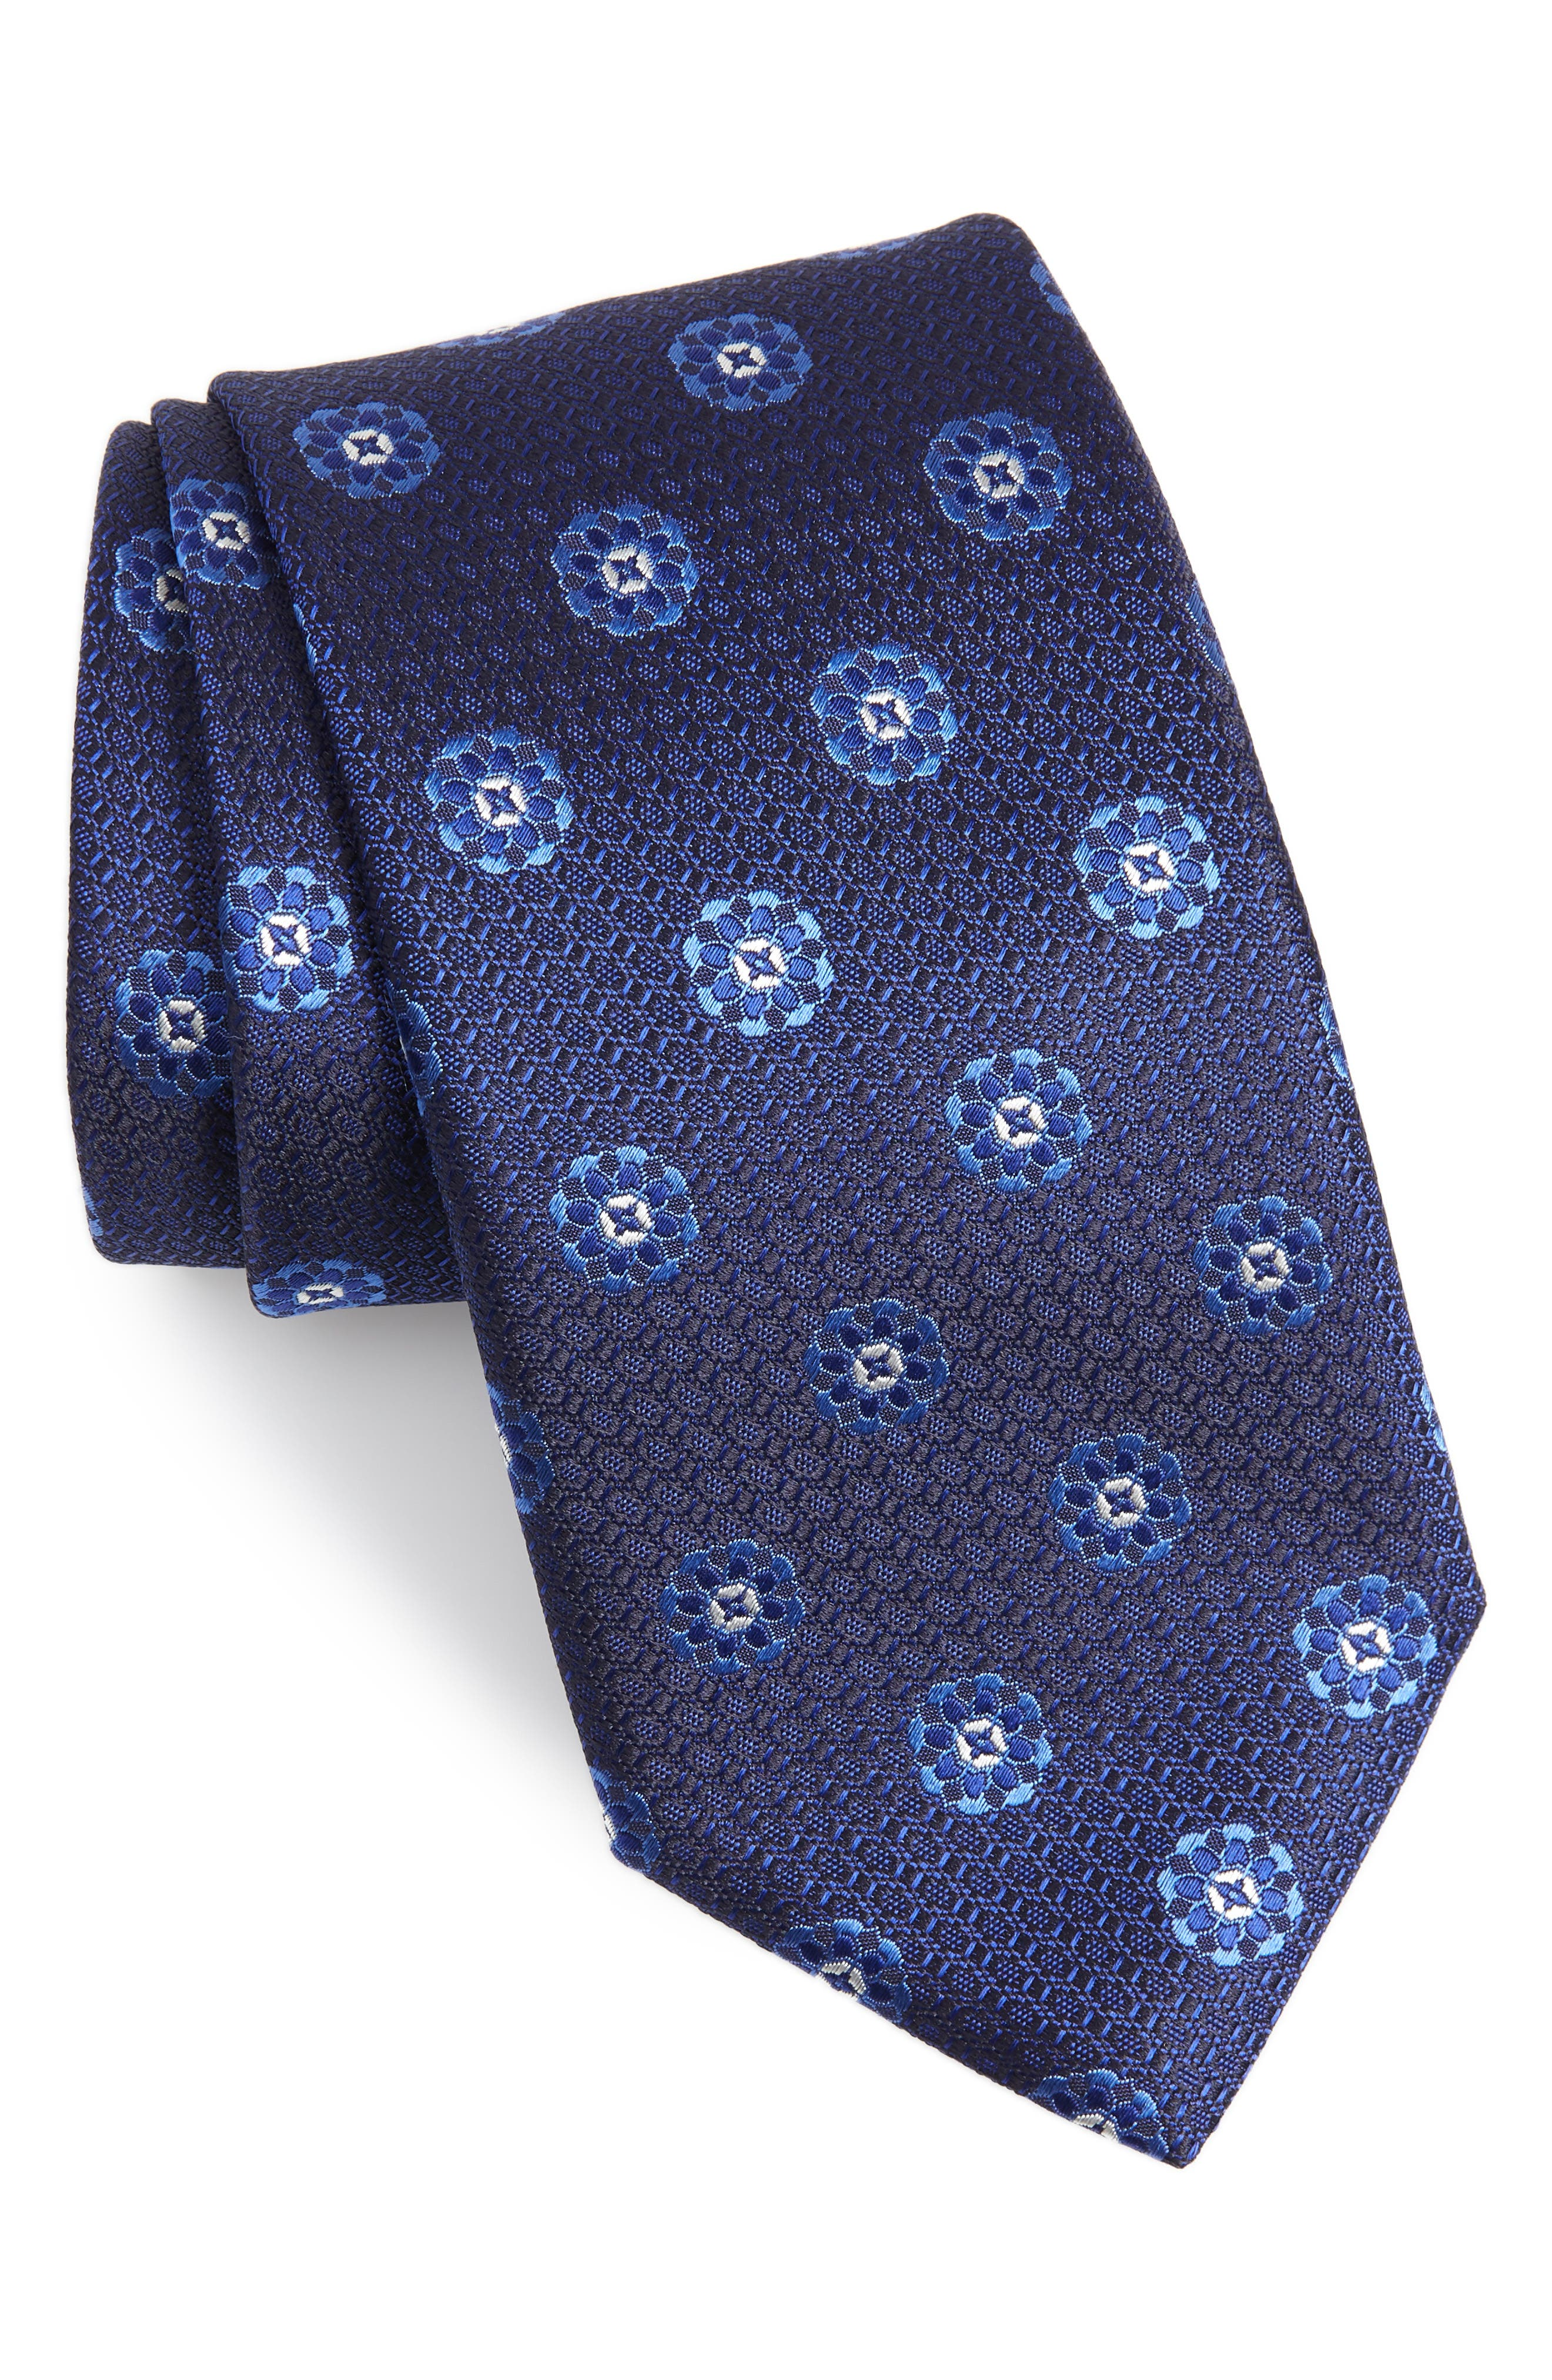 CANALI, Medallion Silk Tie, Main thumbnail 1, color, NAVY